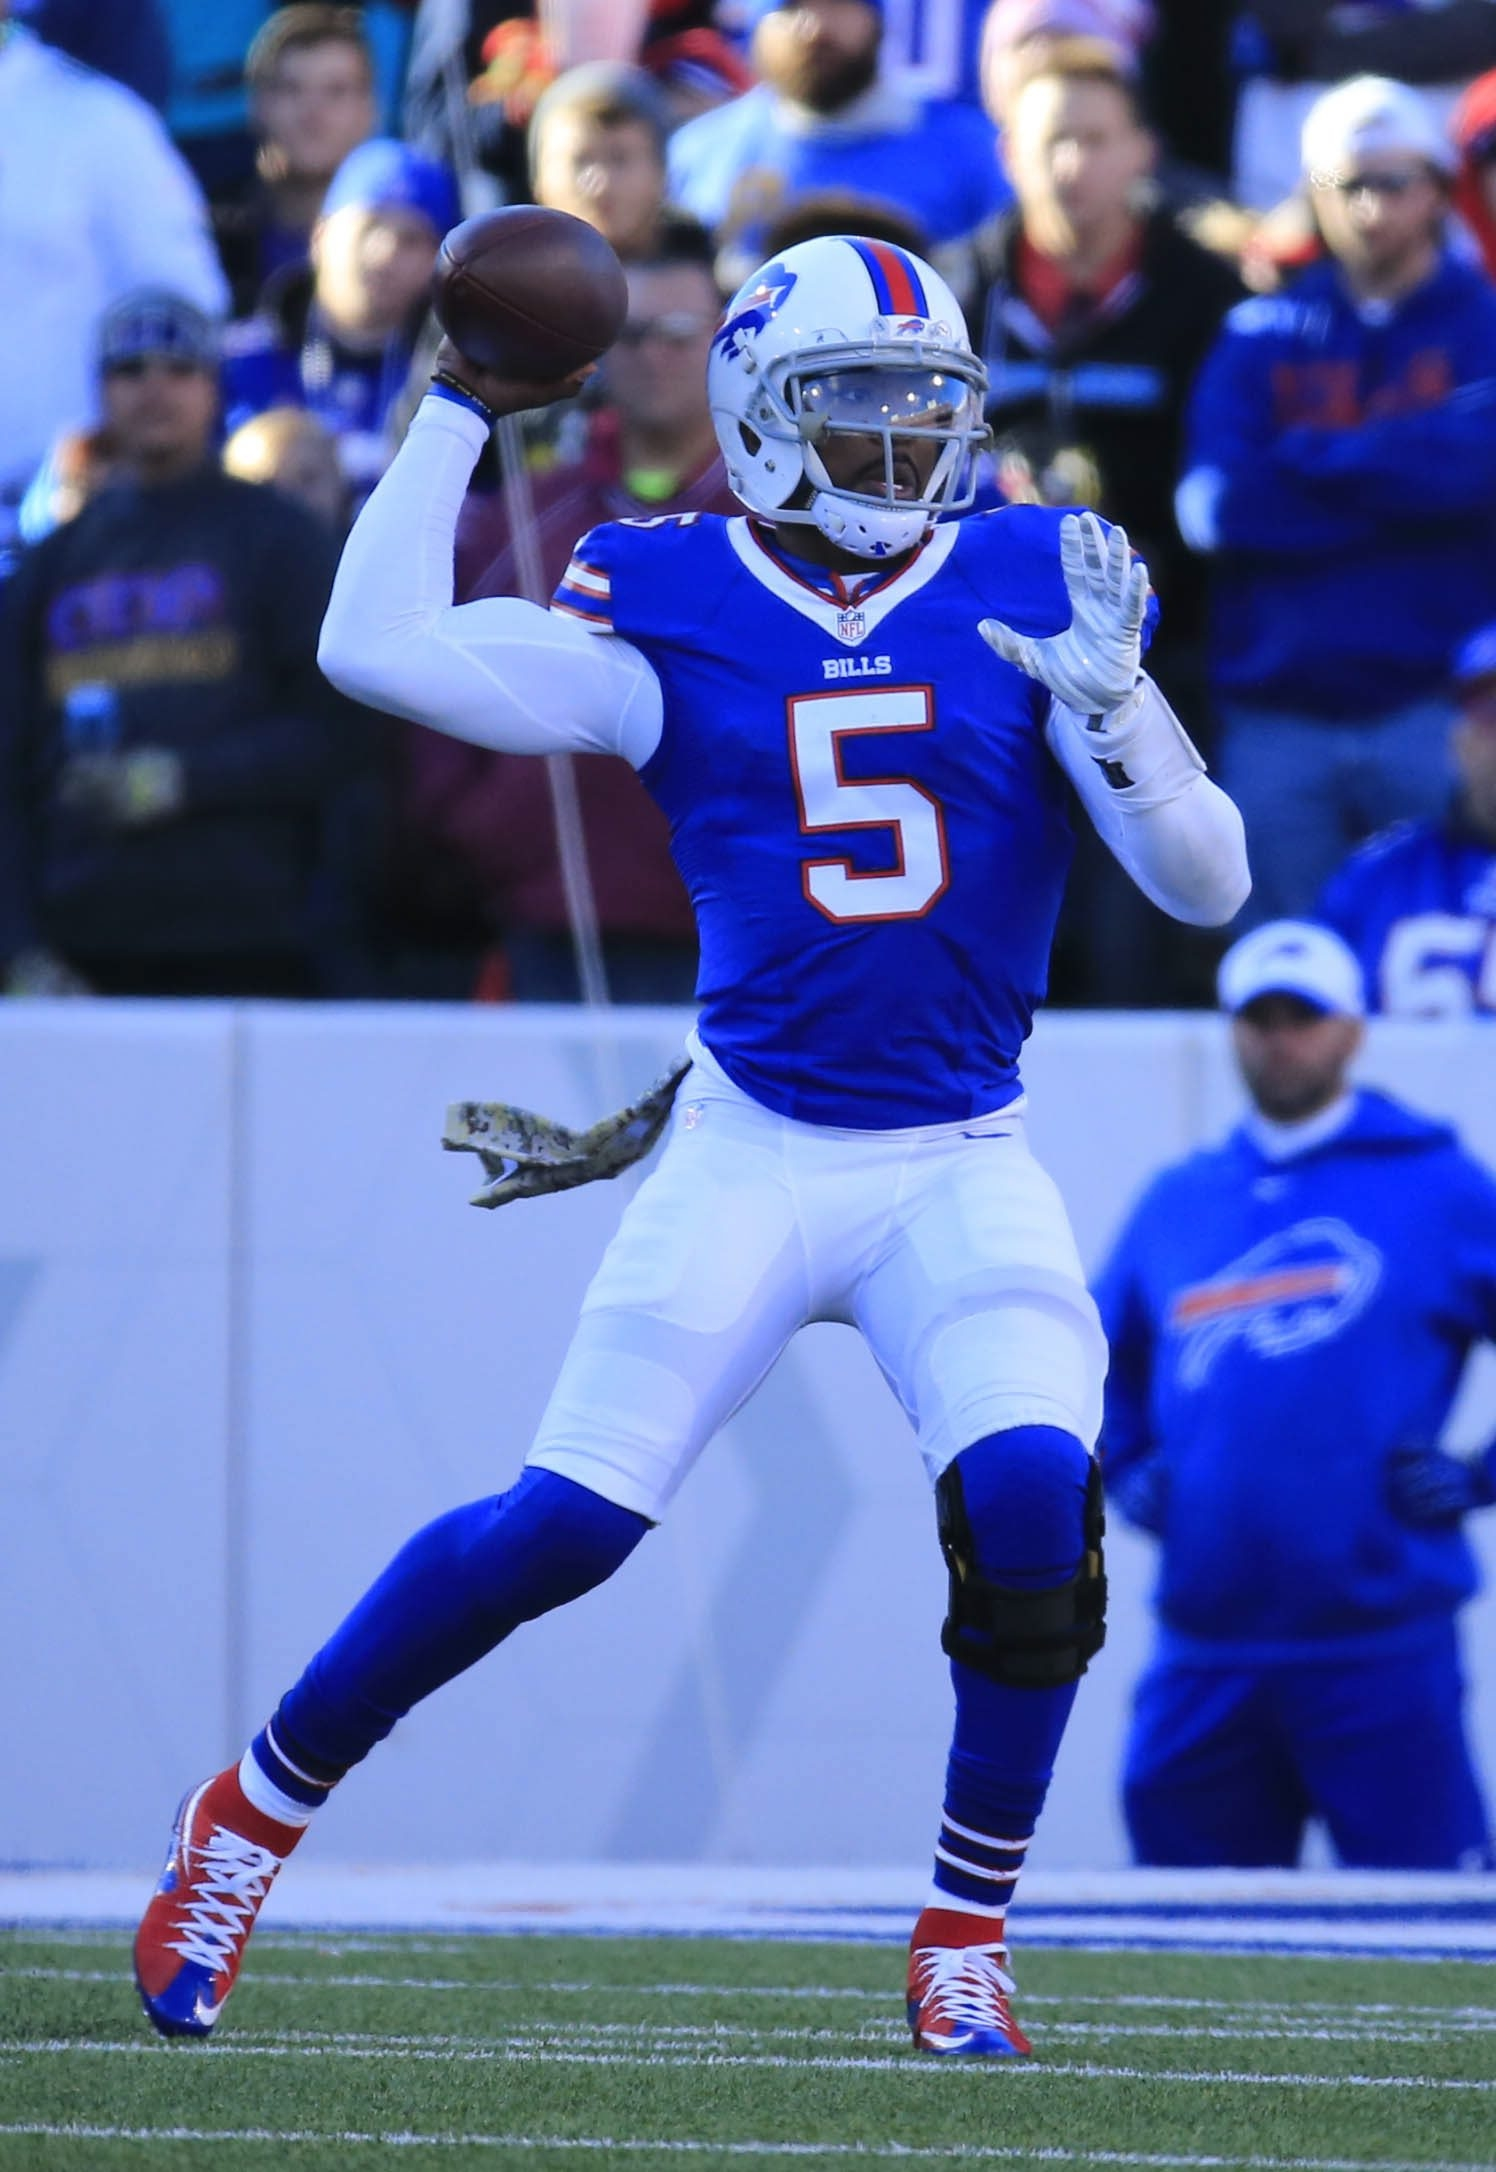 The Bills want a franchise quarterback, so they likely will spend the money on Tyrod Taylor at some point.